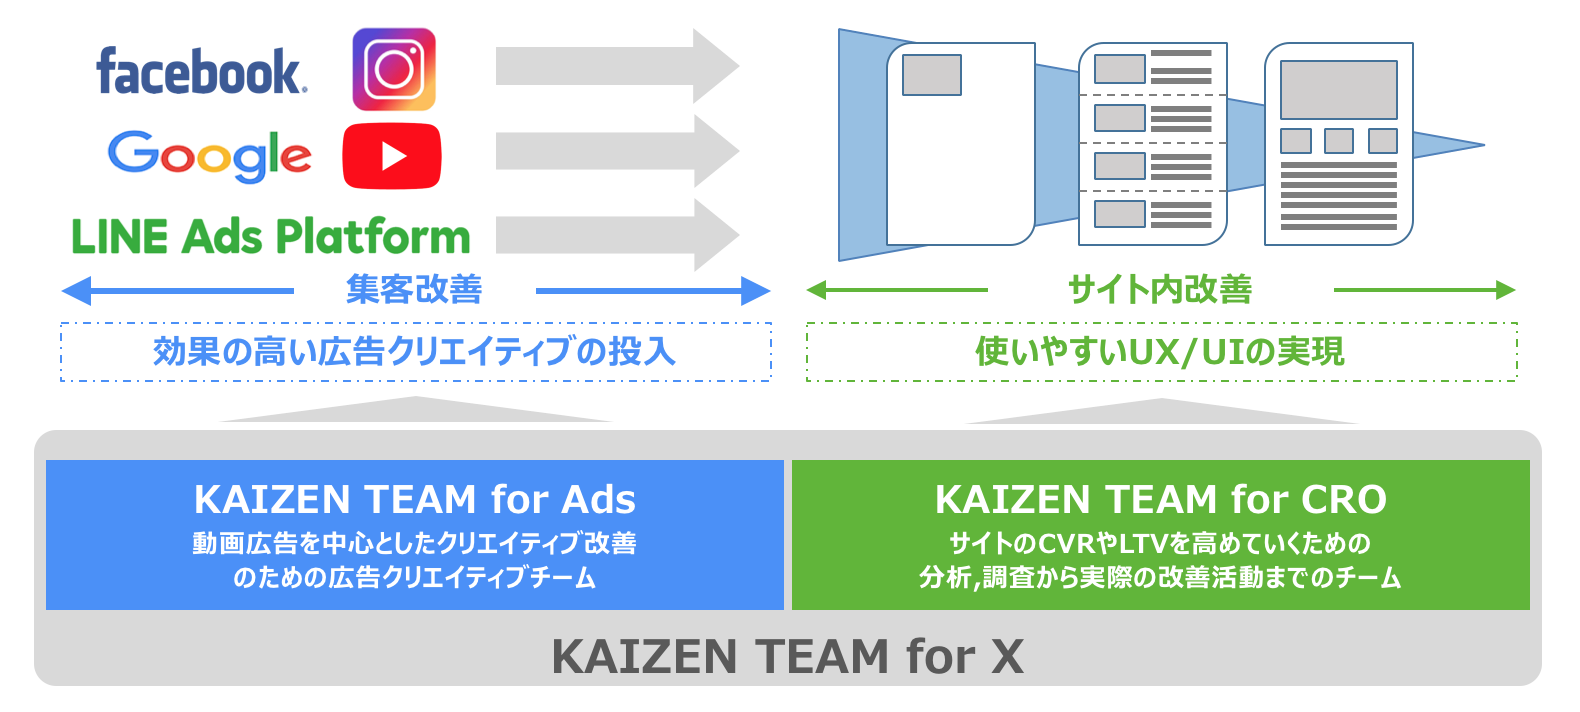 Overview of KAIZEN TEAM for X